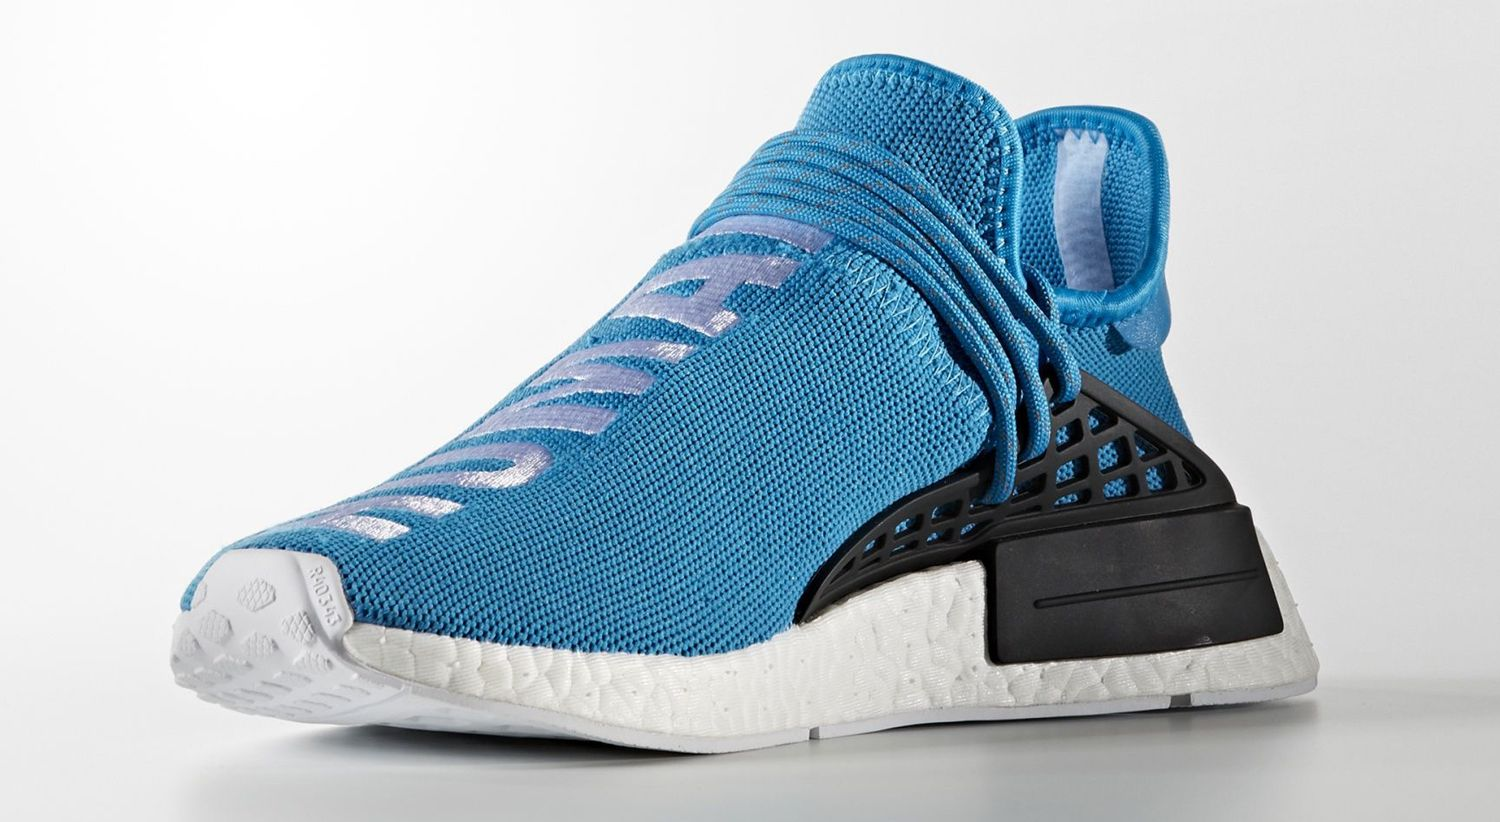 460f1f4ec1d34 Pharrell x adidas NMD Human Race Light Blue